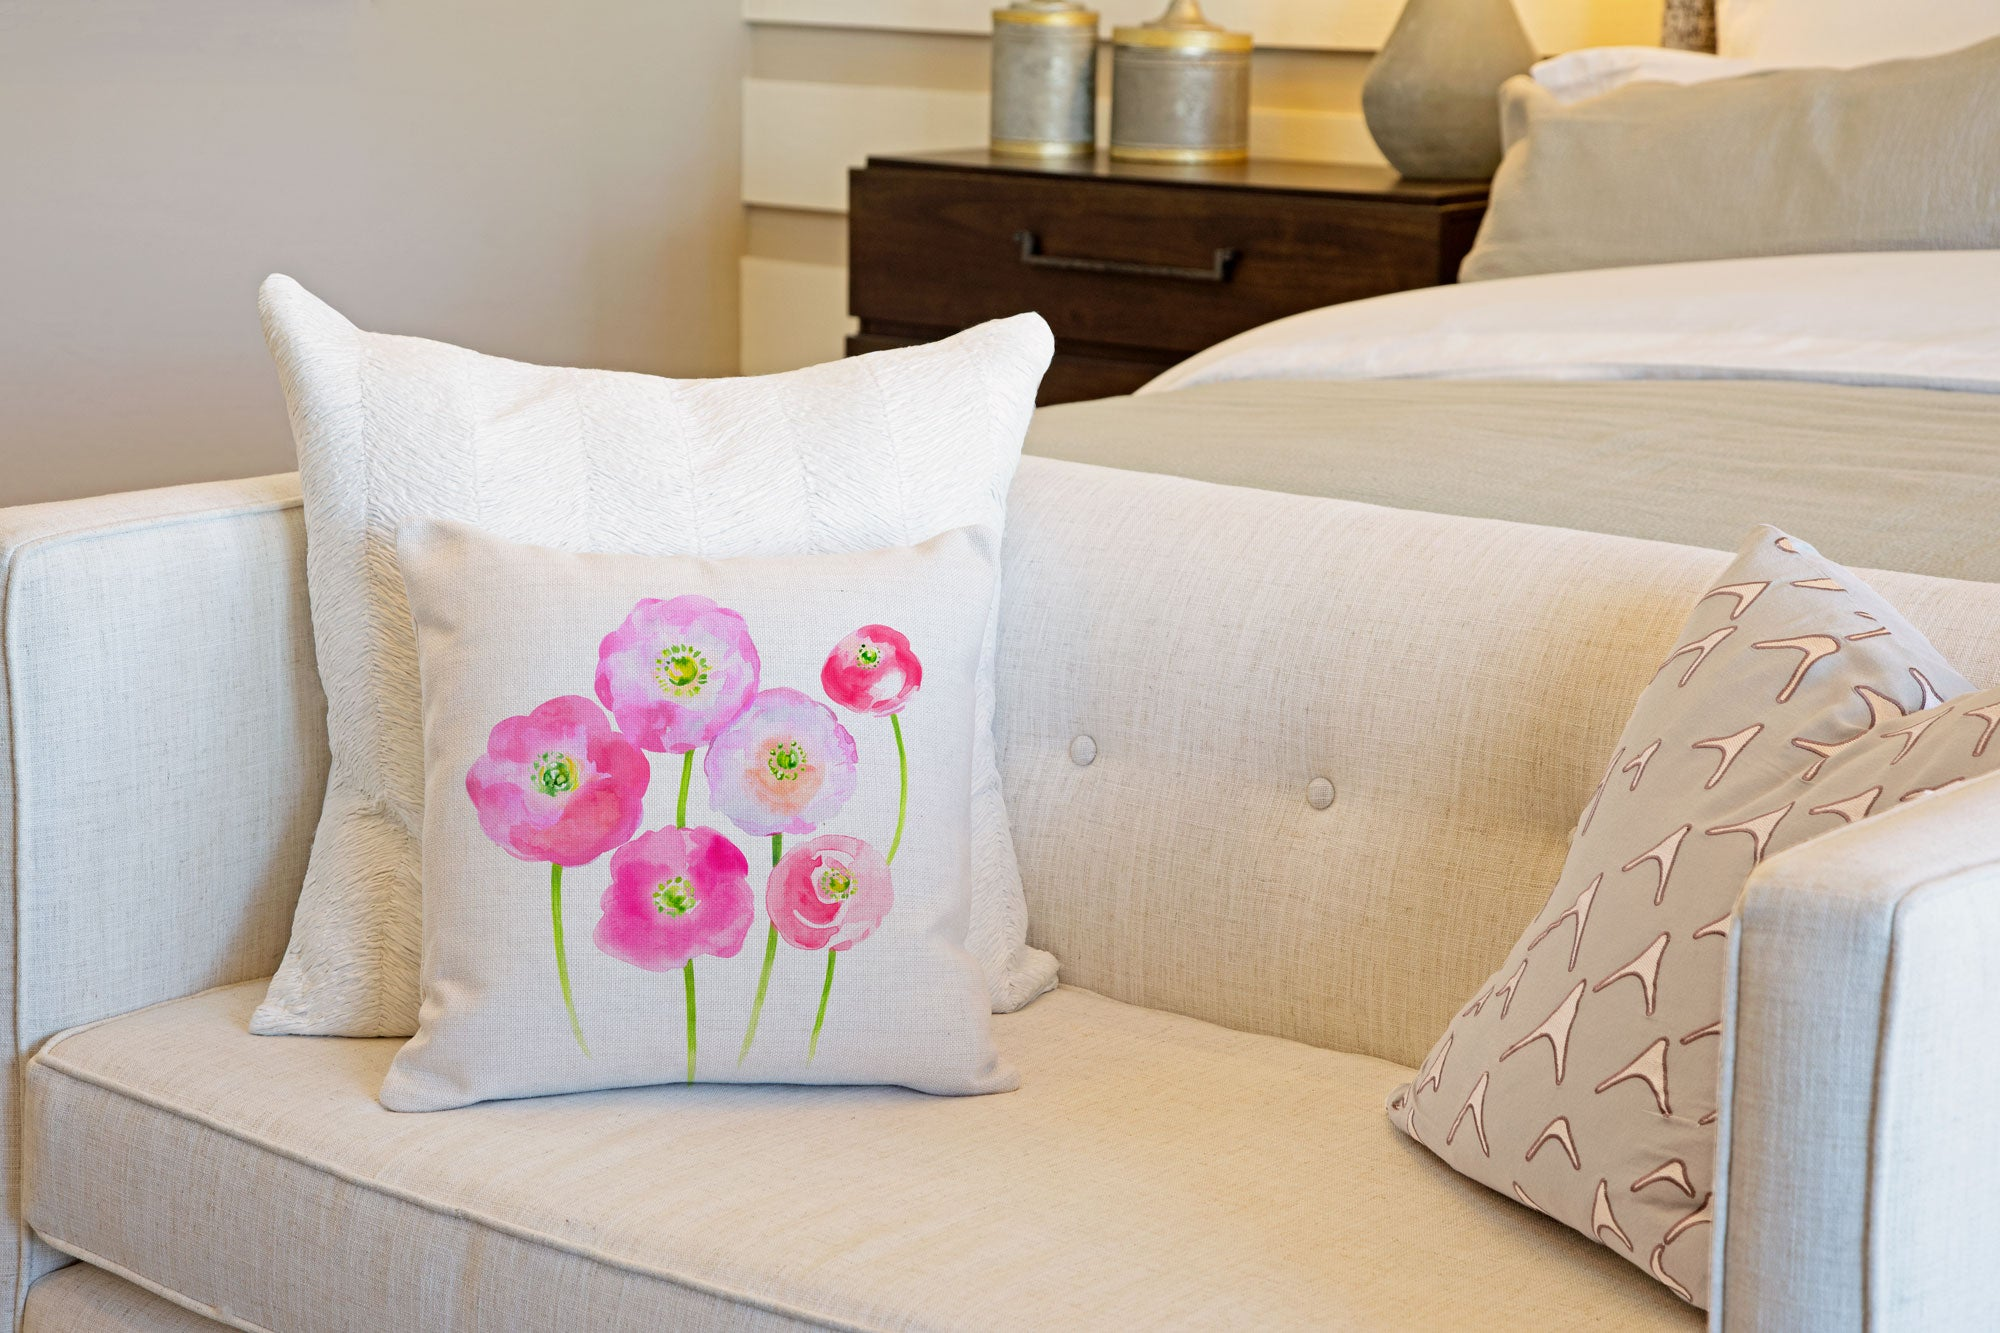 Pink Poppies Throw Pillow Cover - Decorative Designs Throw Pillow Cover Collection